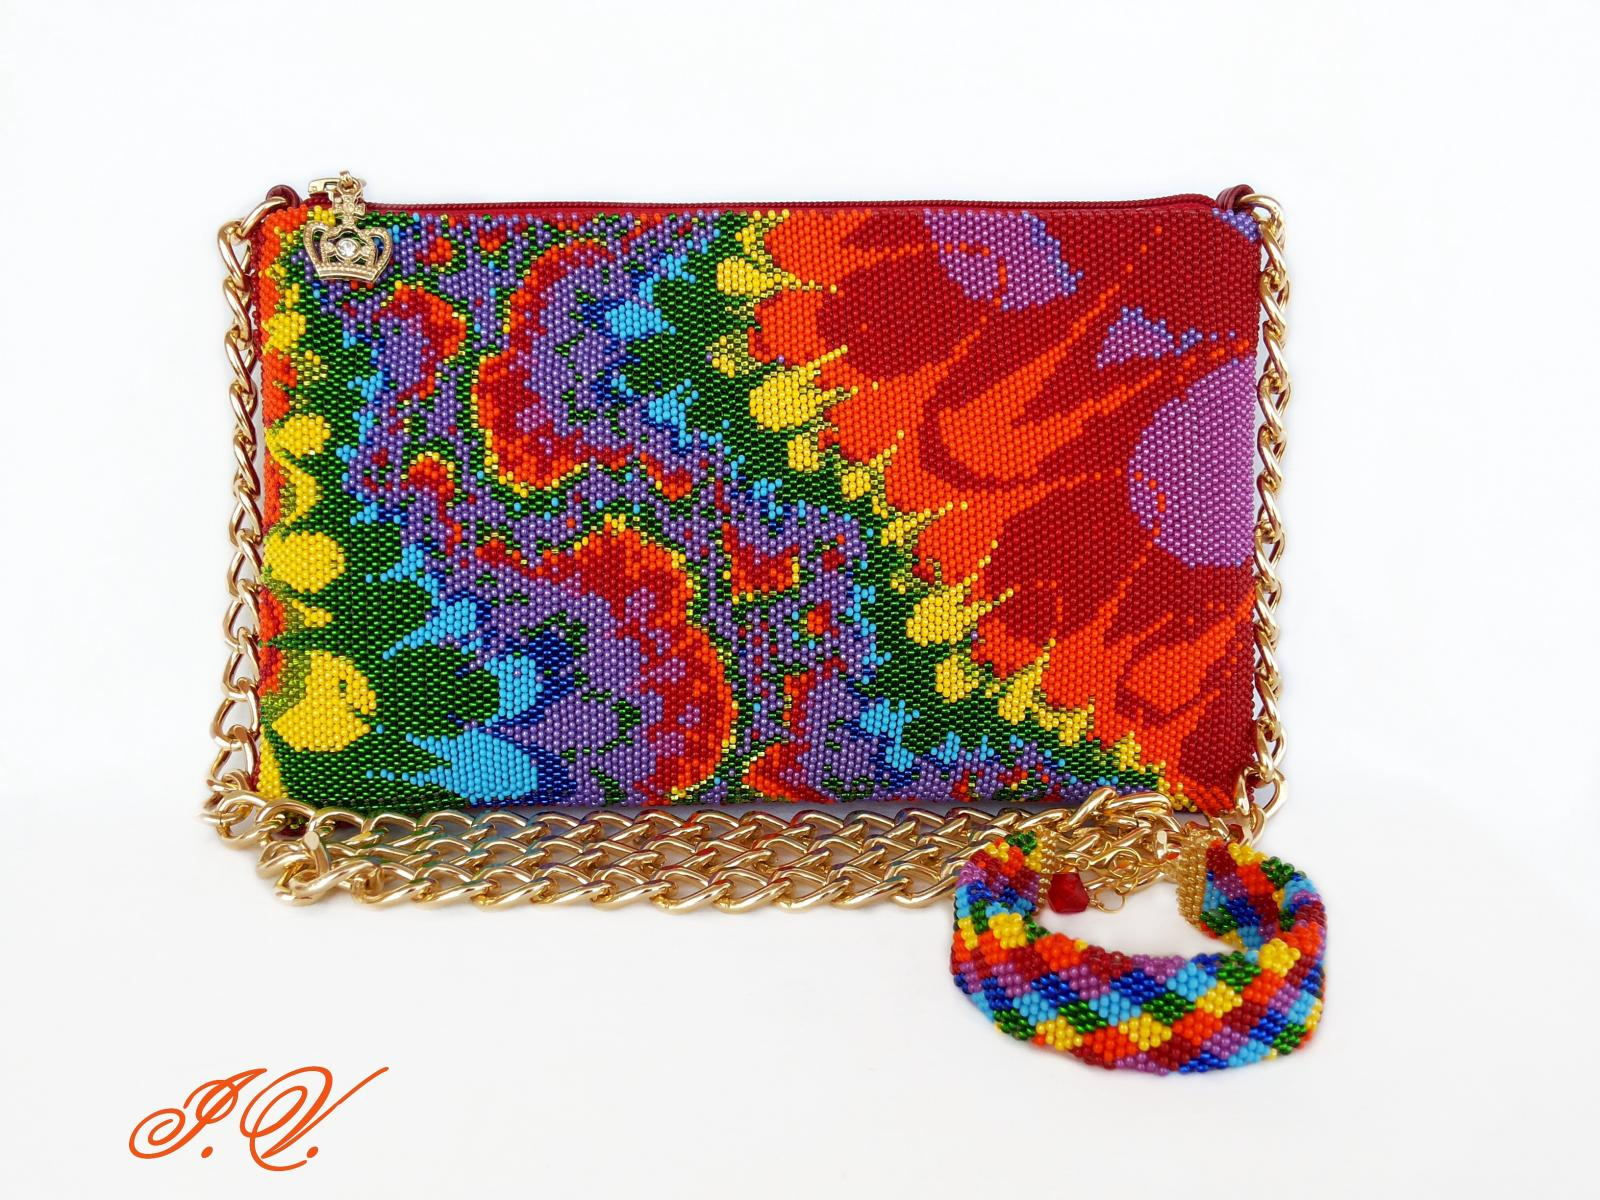 9-bag-beaded-clutch-bedsmagic